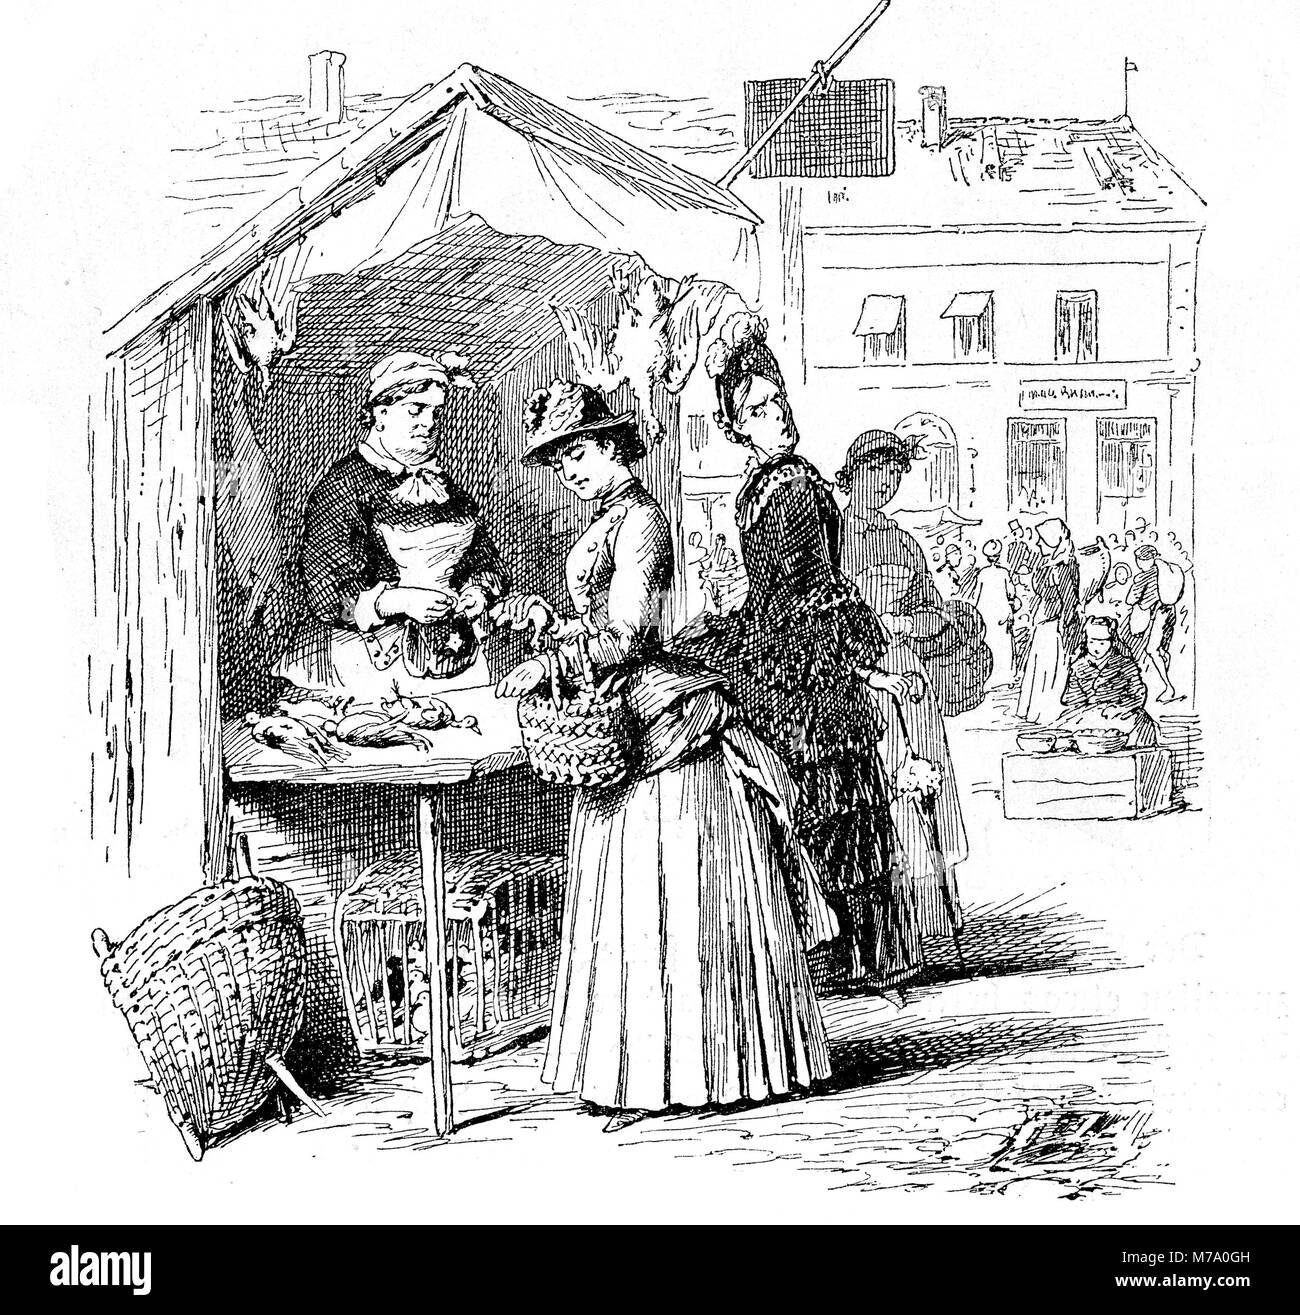 young woman shopping for poultry at the city market, vintage engraving - Stock Image